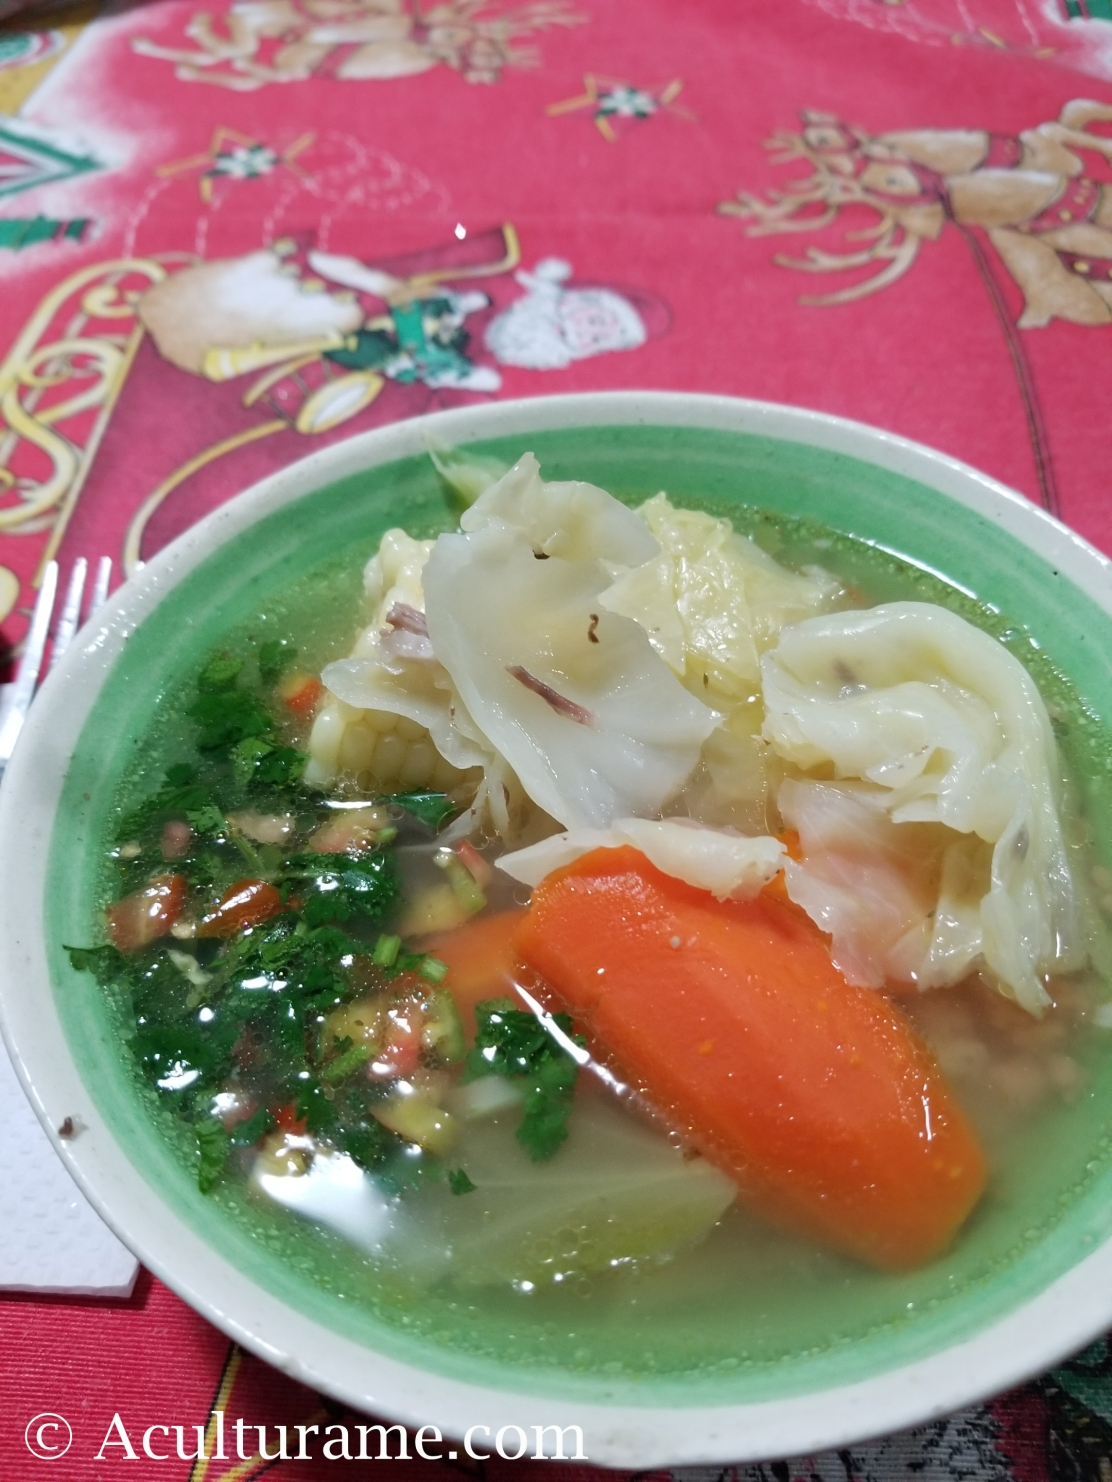 Caldo de Res or Cocido de Res is a traditional beef broth prepared in Mexico.